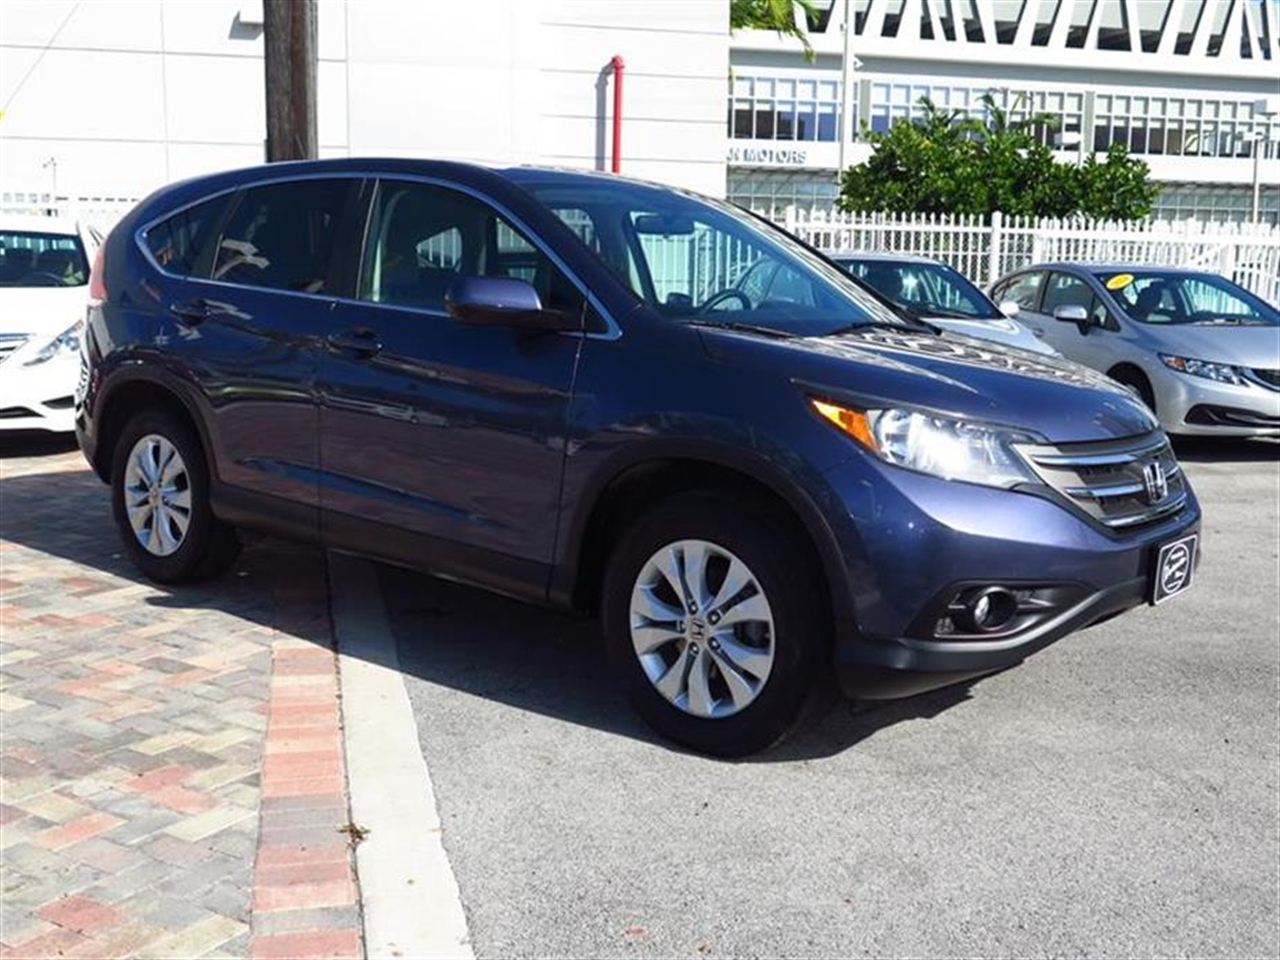 2012 HOND CRV 4WD 5dr EX 19940 miles 4 cargo area tie-down anchors 8 cup holders 12V pwr ou